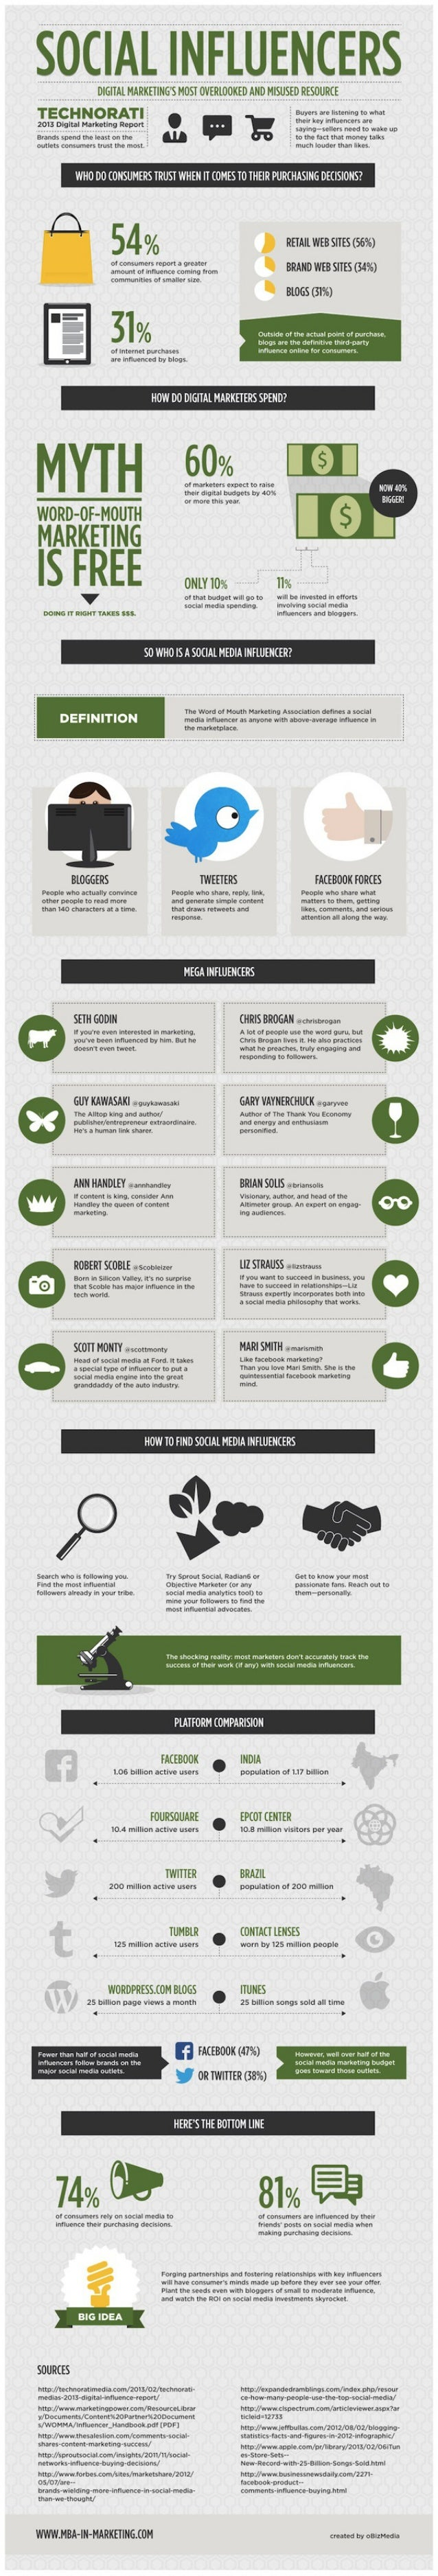 Collaborative IQ with Denise Holt - INFOGRAPHIC Social Influencers